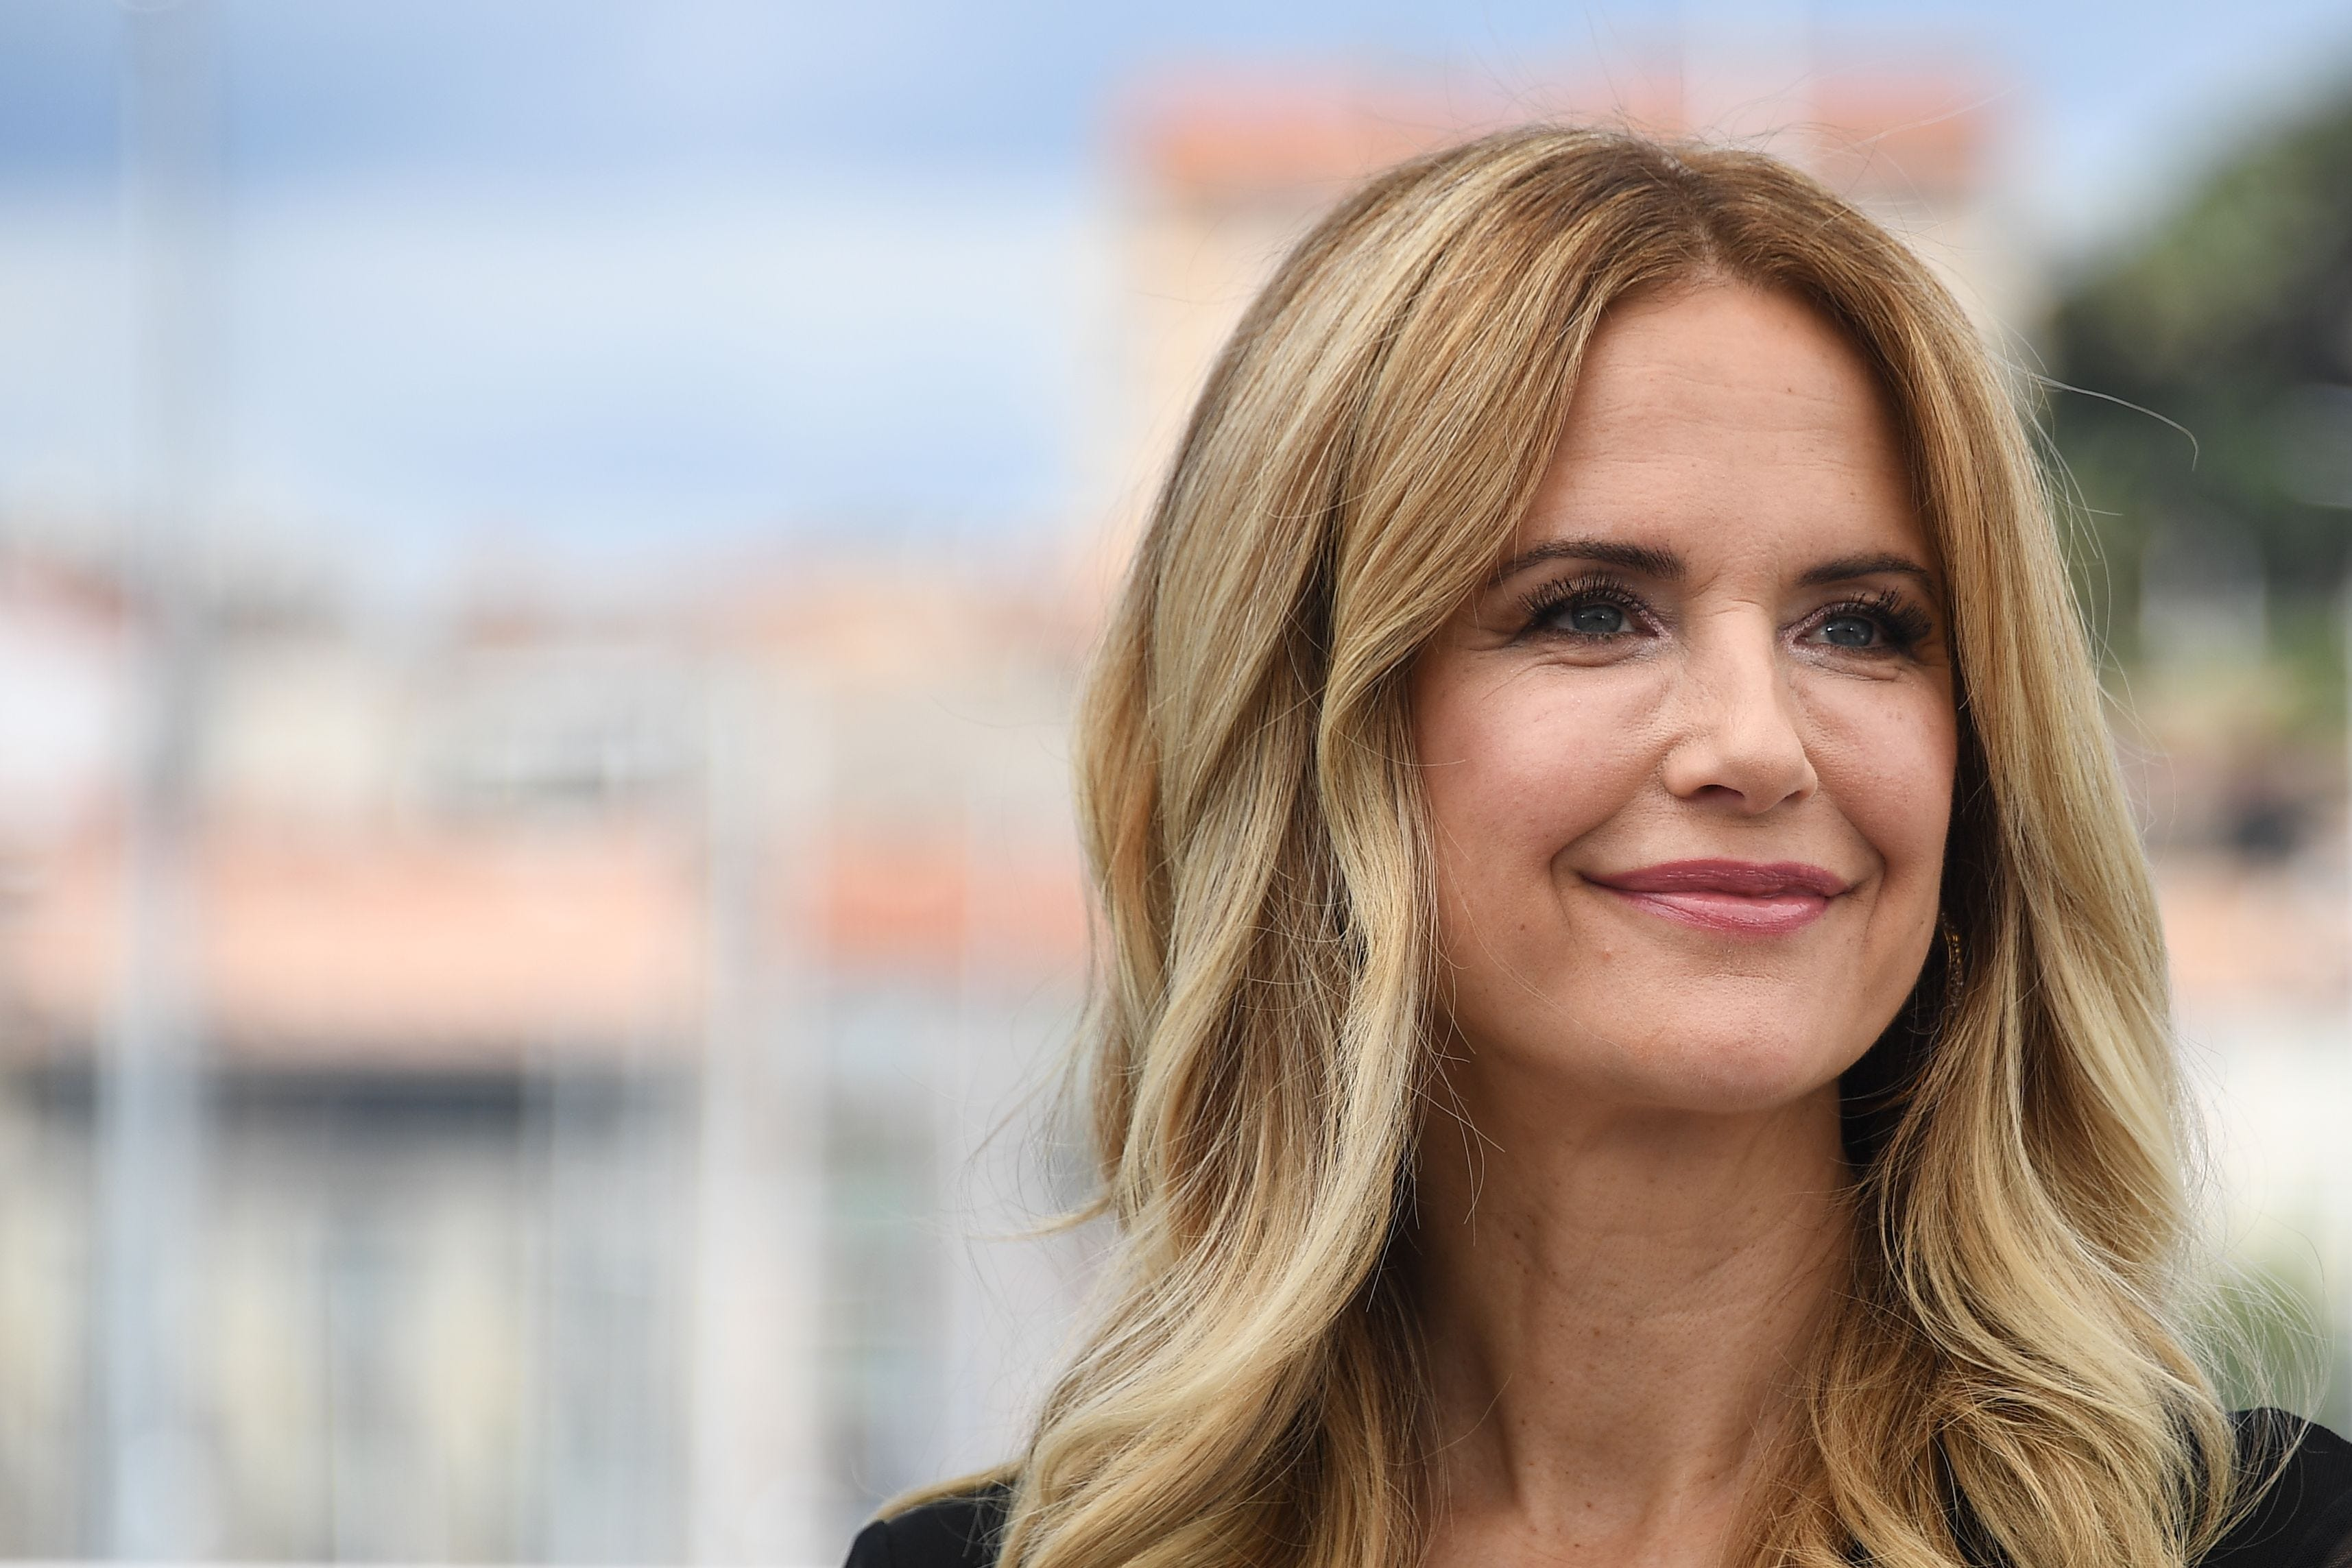 Jerry Maguire  actress Kelly Preston, wife of John Travolta, dies of breast cancer at 57